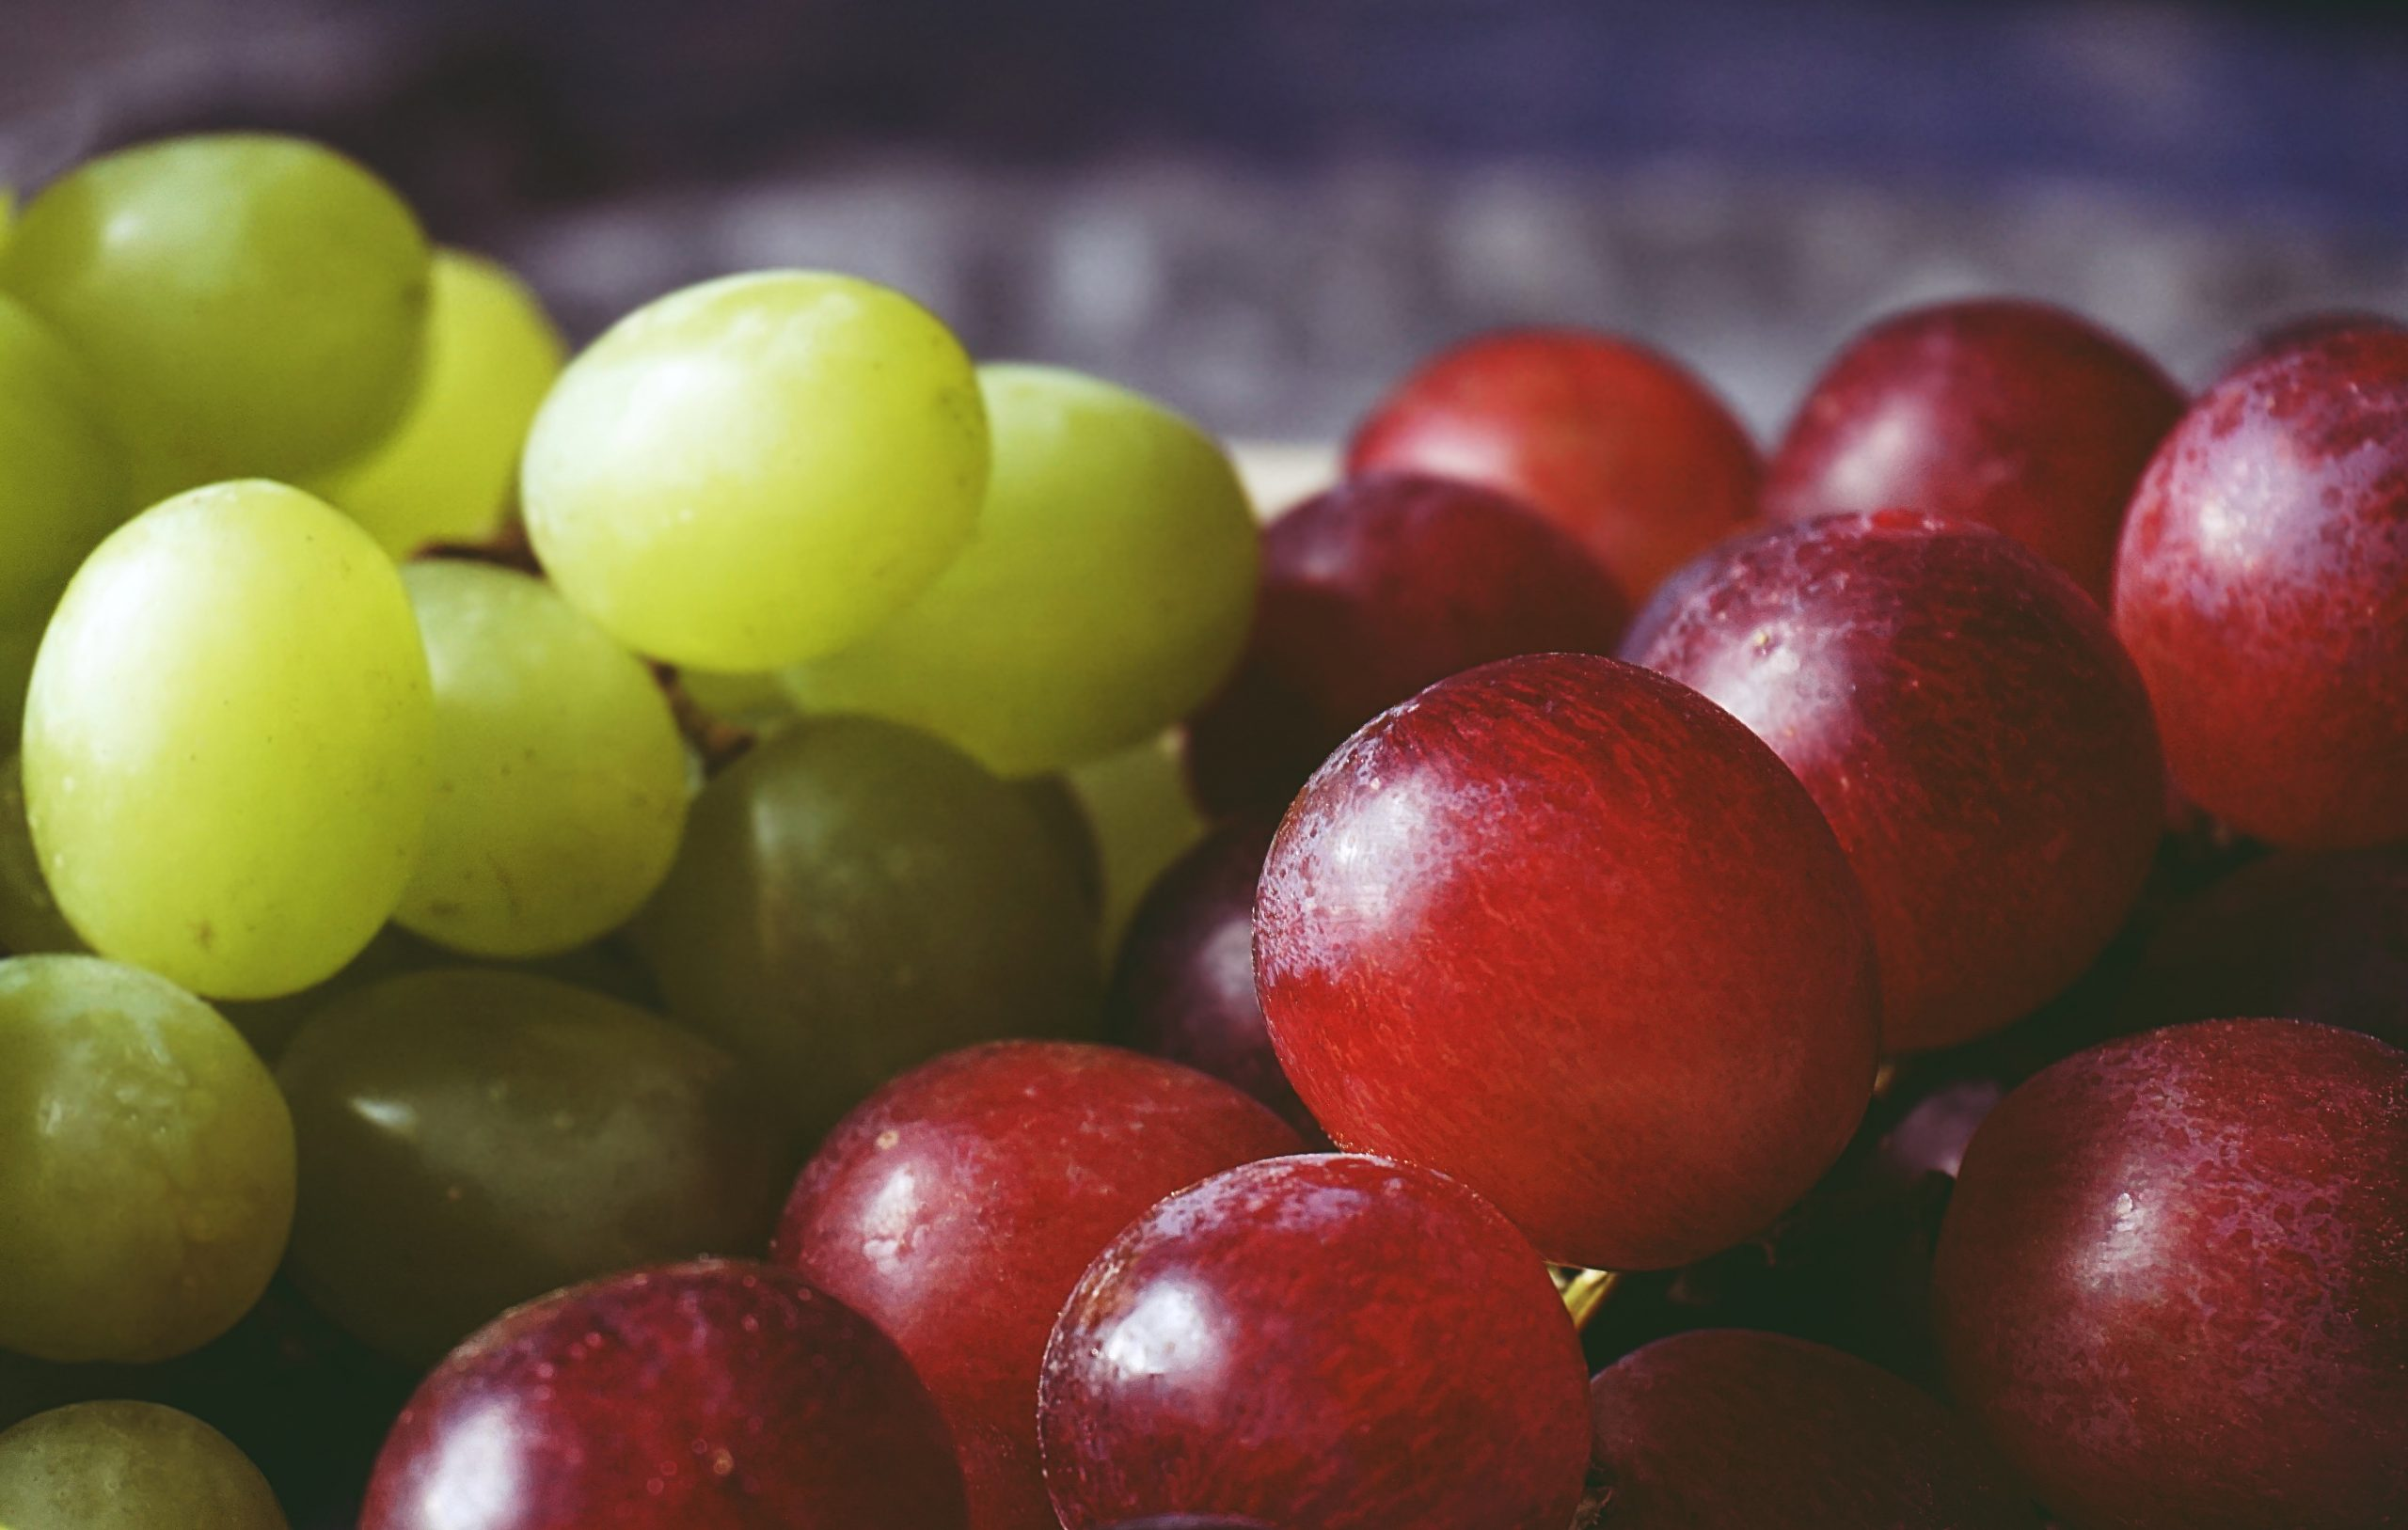 20 Foods Harmful to Dogs - grapes and raisins